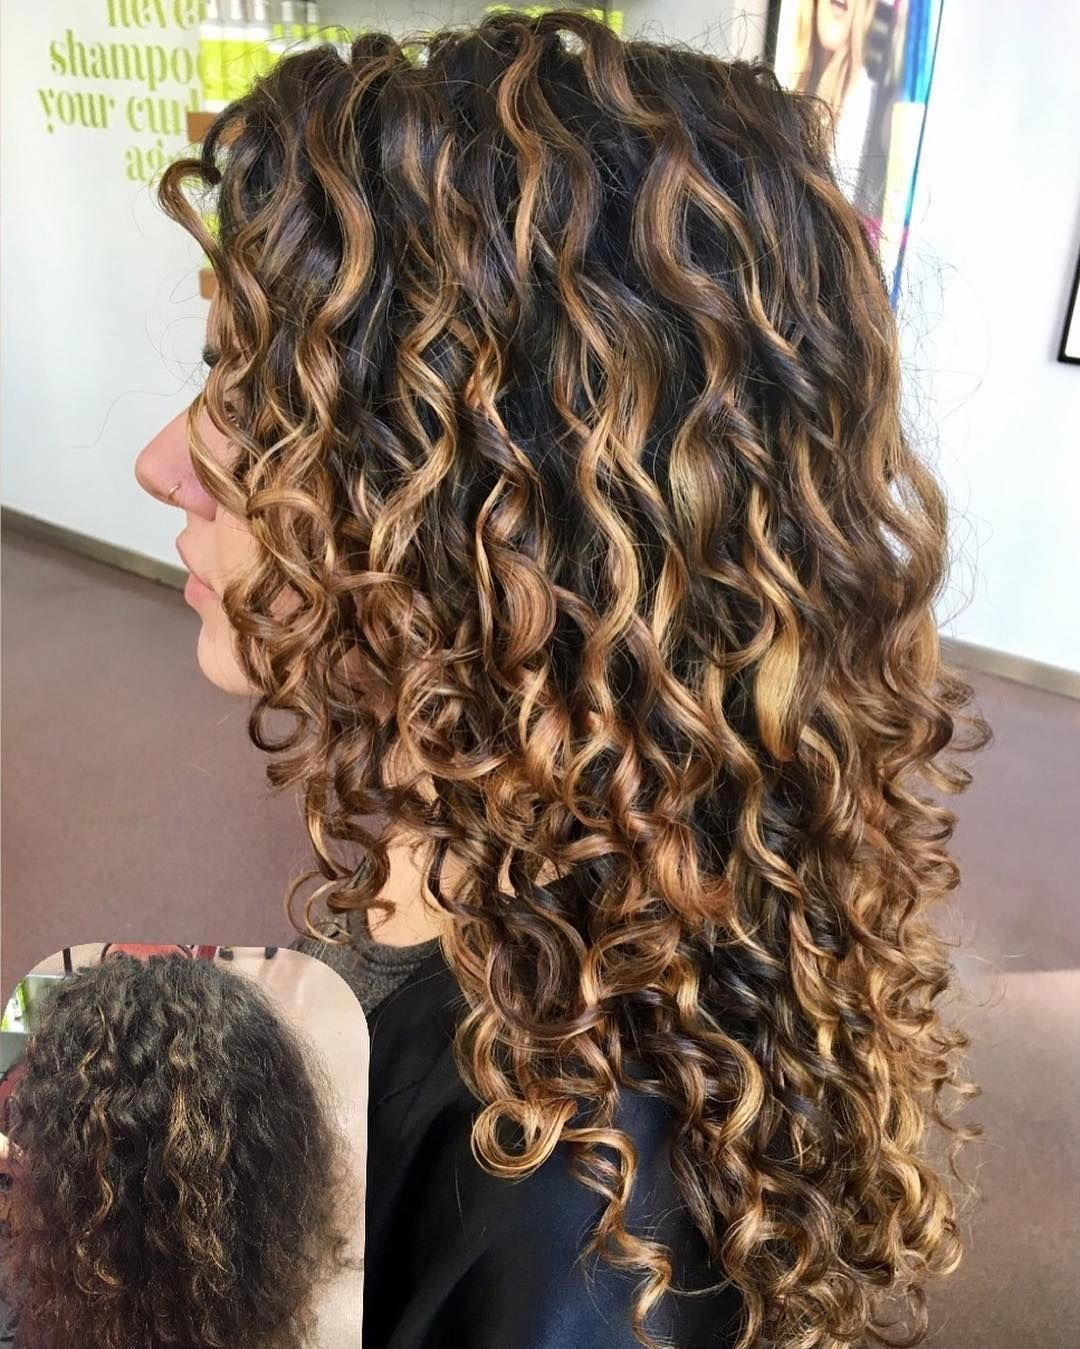 96 Natural Curly Hairstyles Permed Hairstyles Curly Hair Styles Curly Hair Styles Naturally